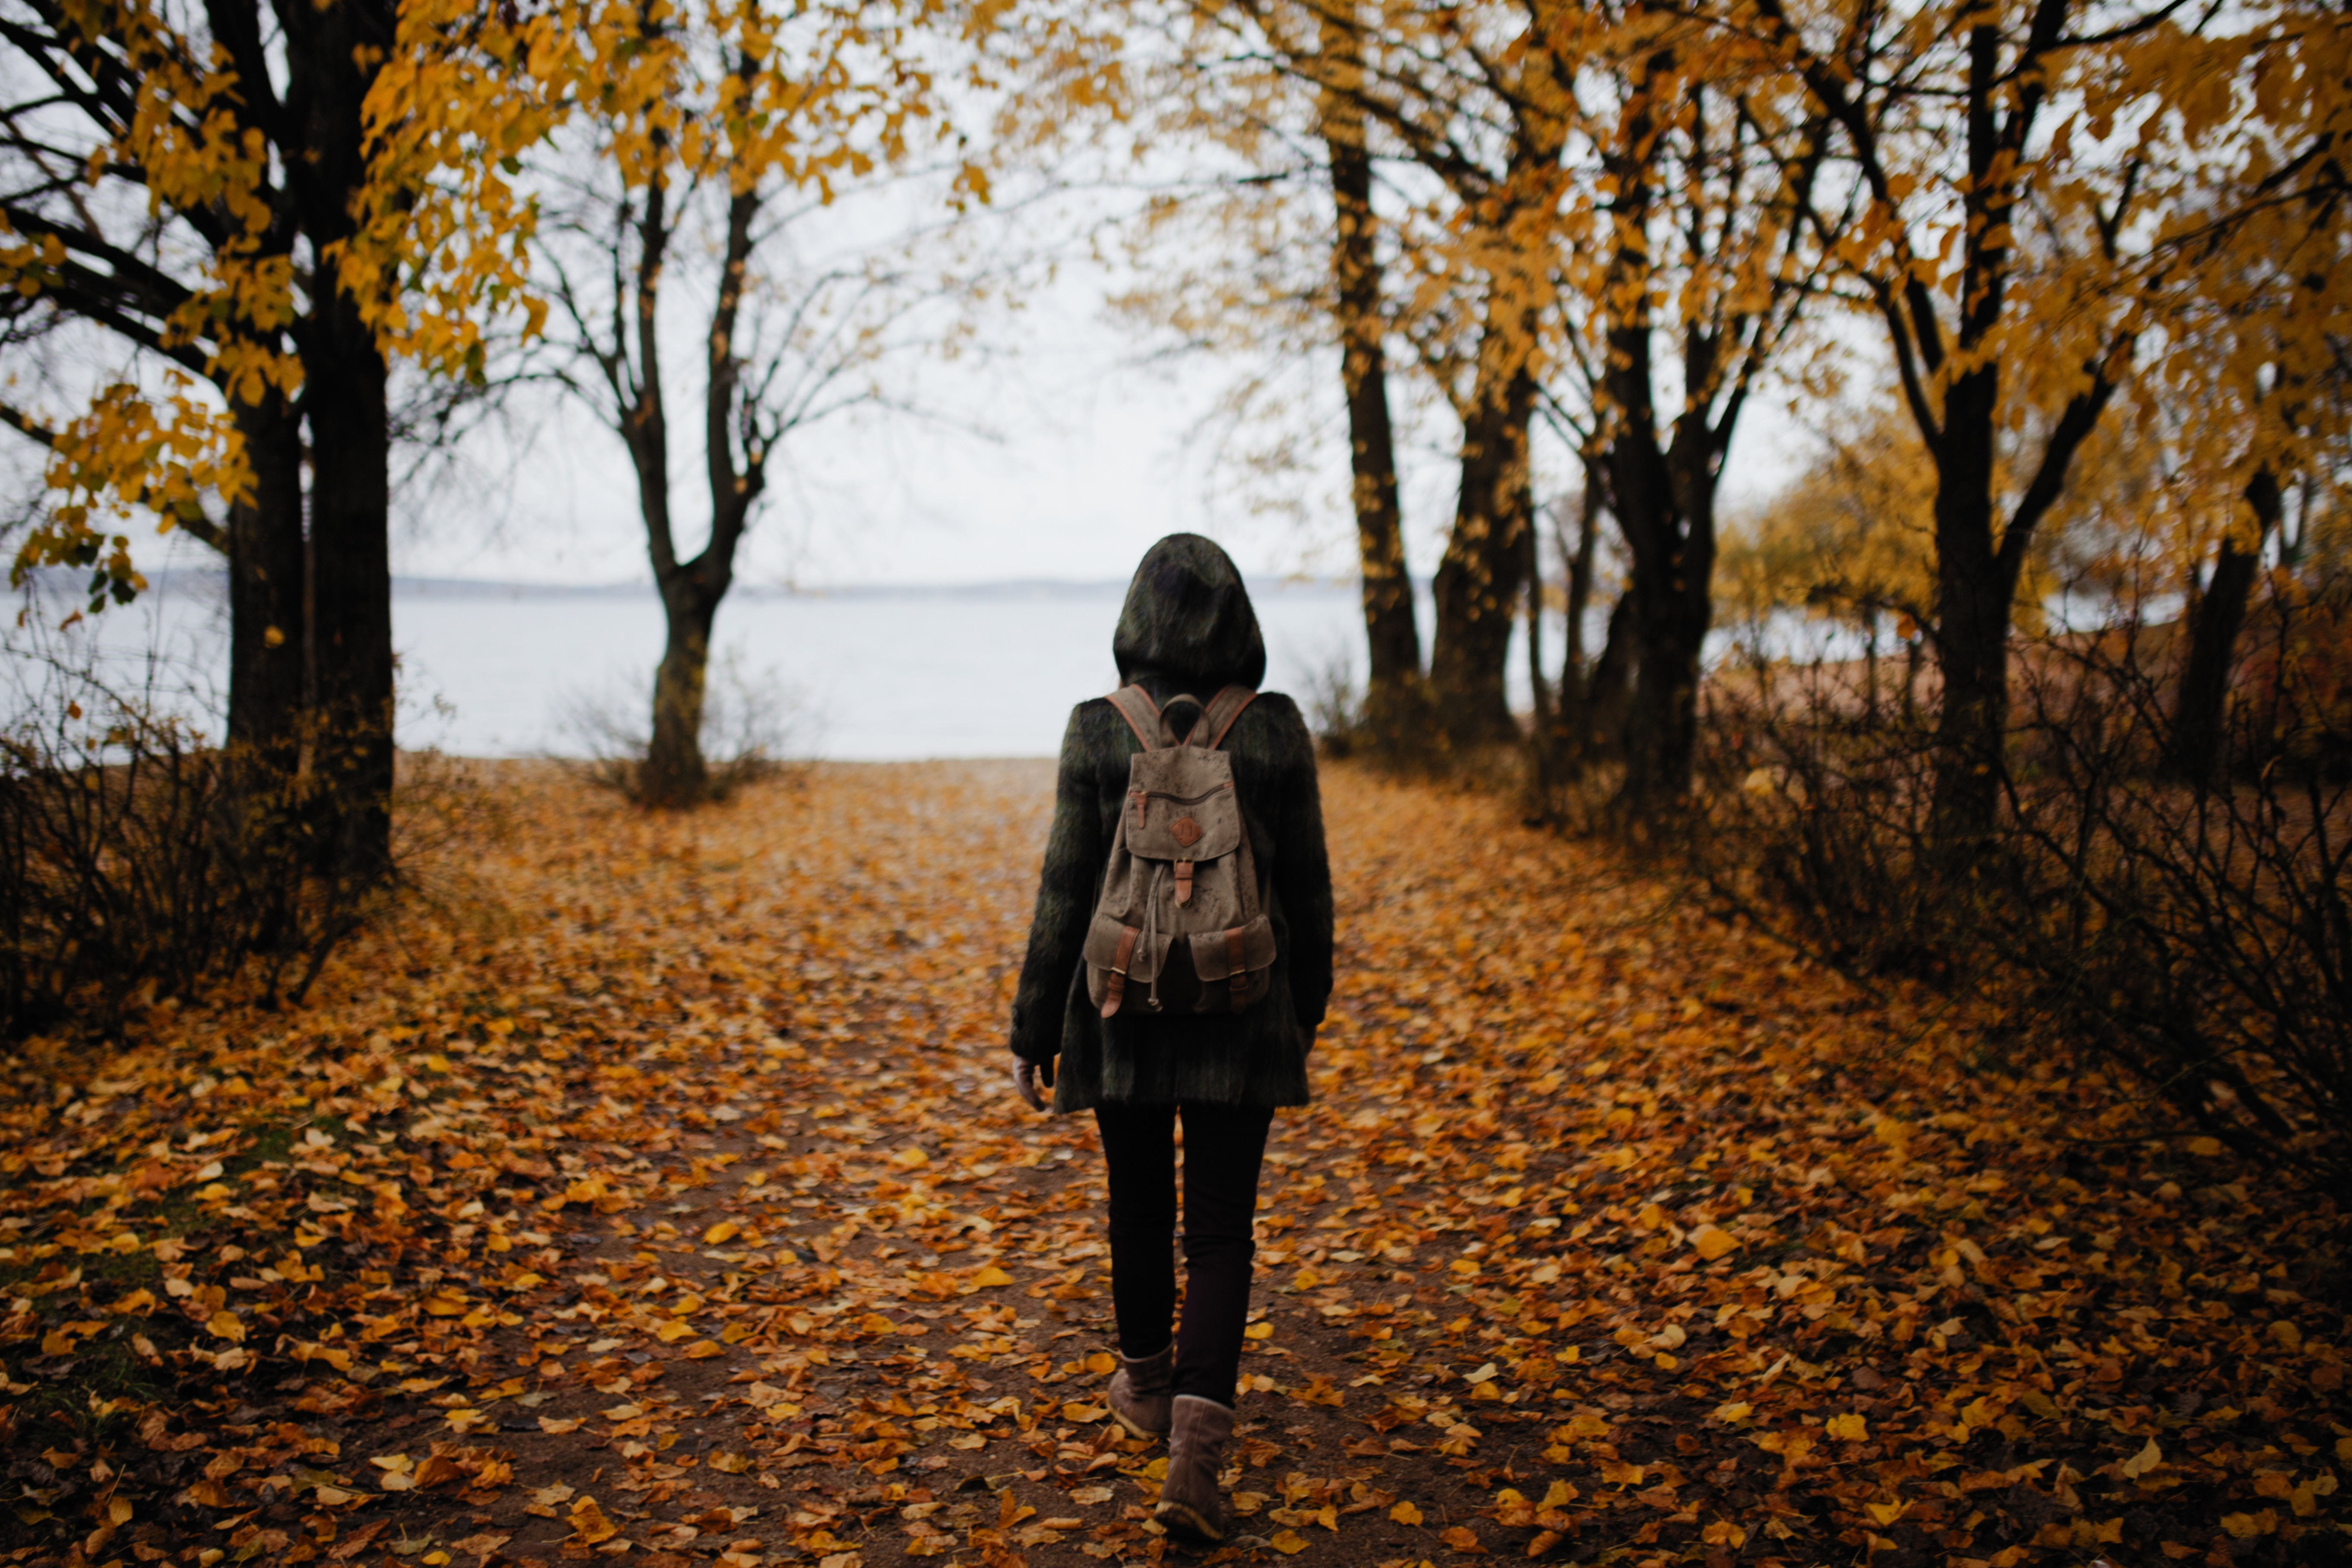 Have you tried mindful walking